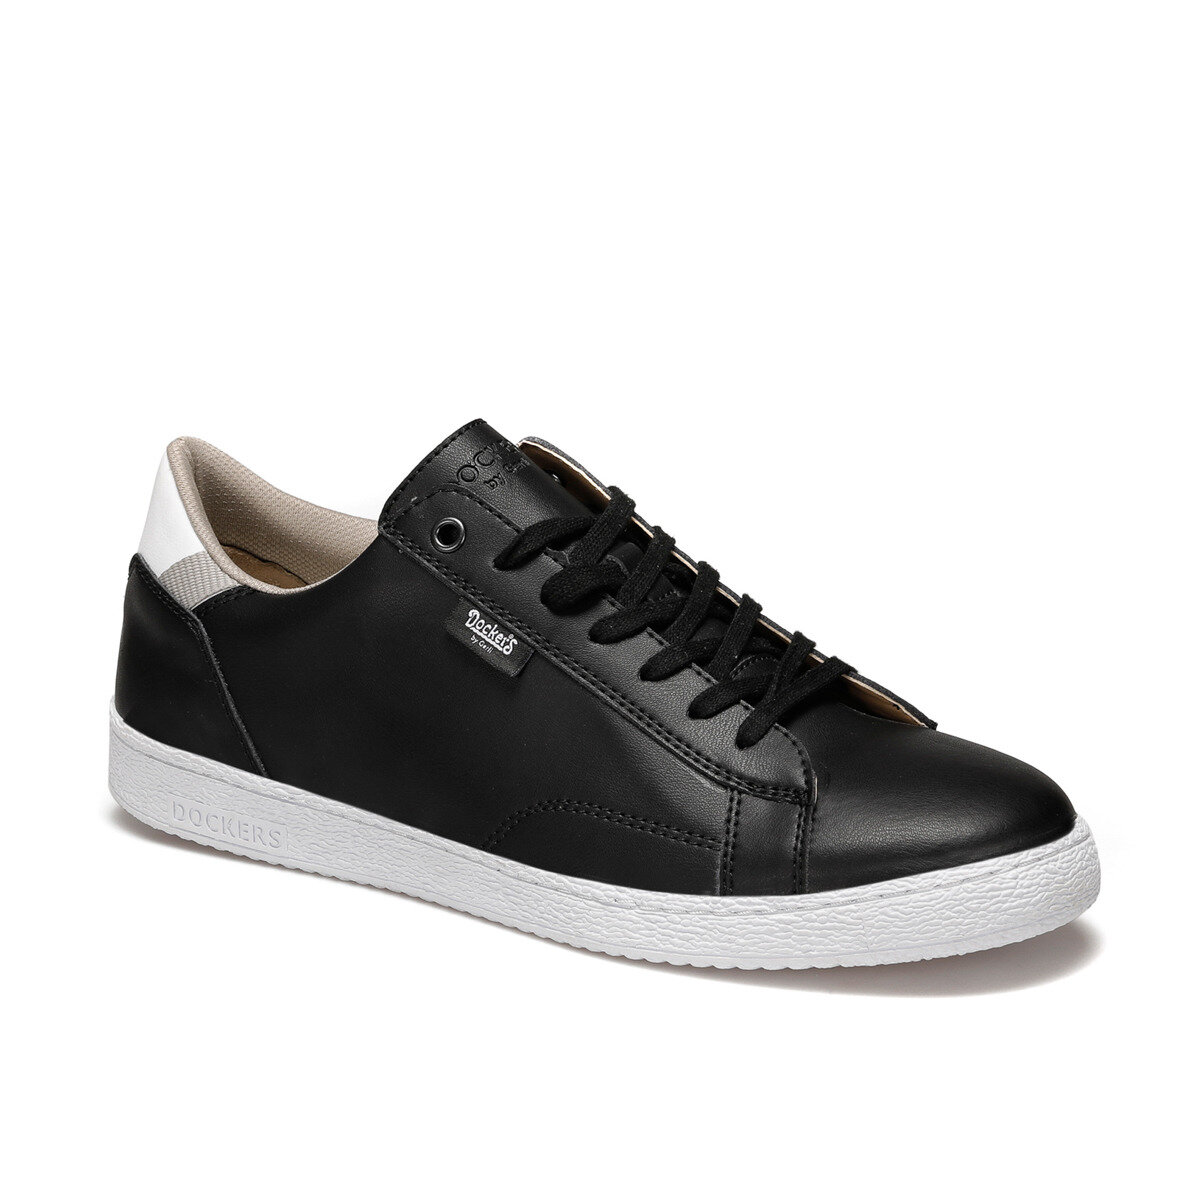 FLO 226102 Black Male Sneaker By Dockers The Gerle